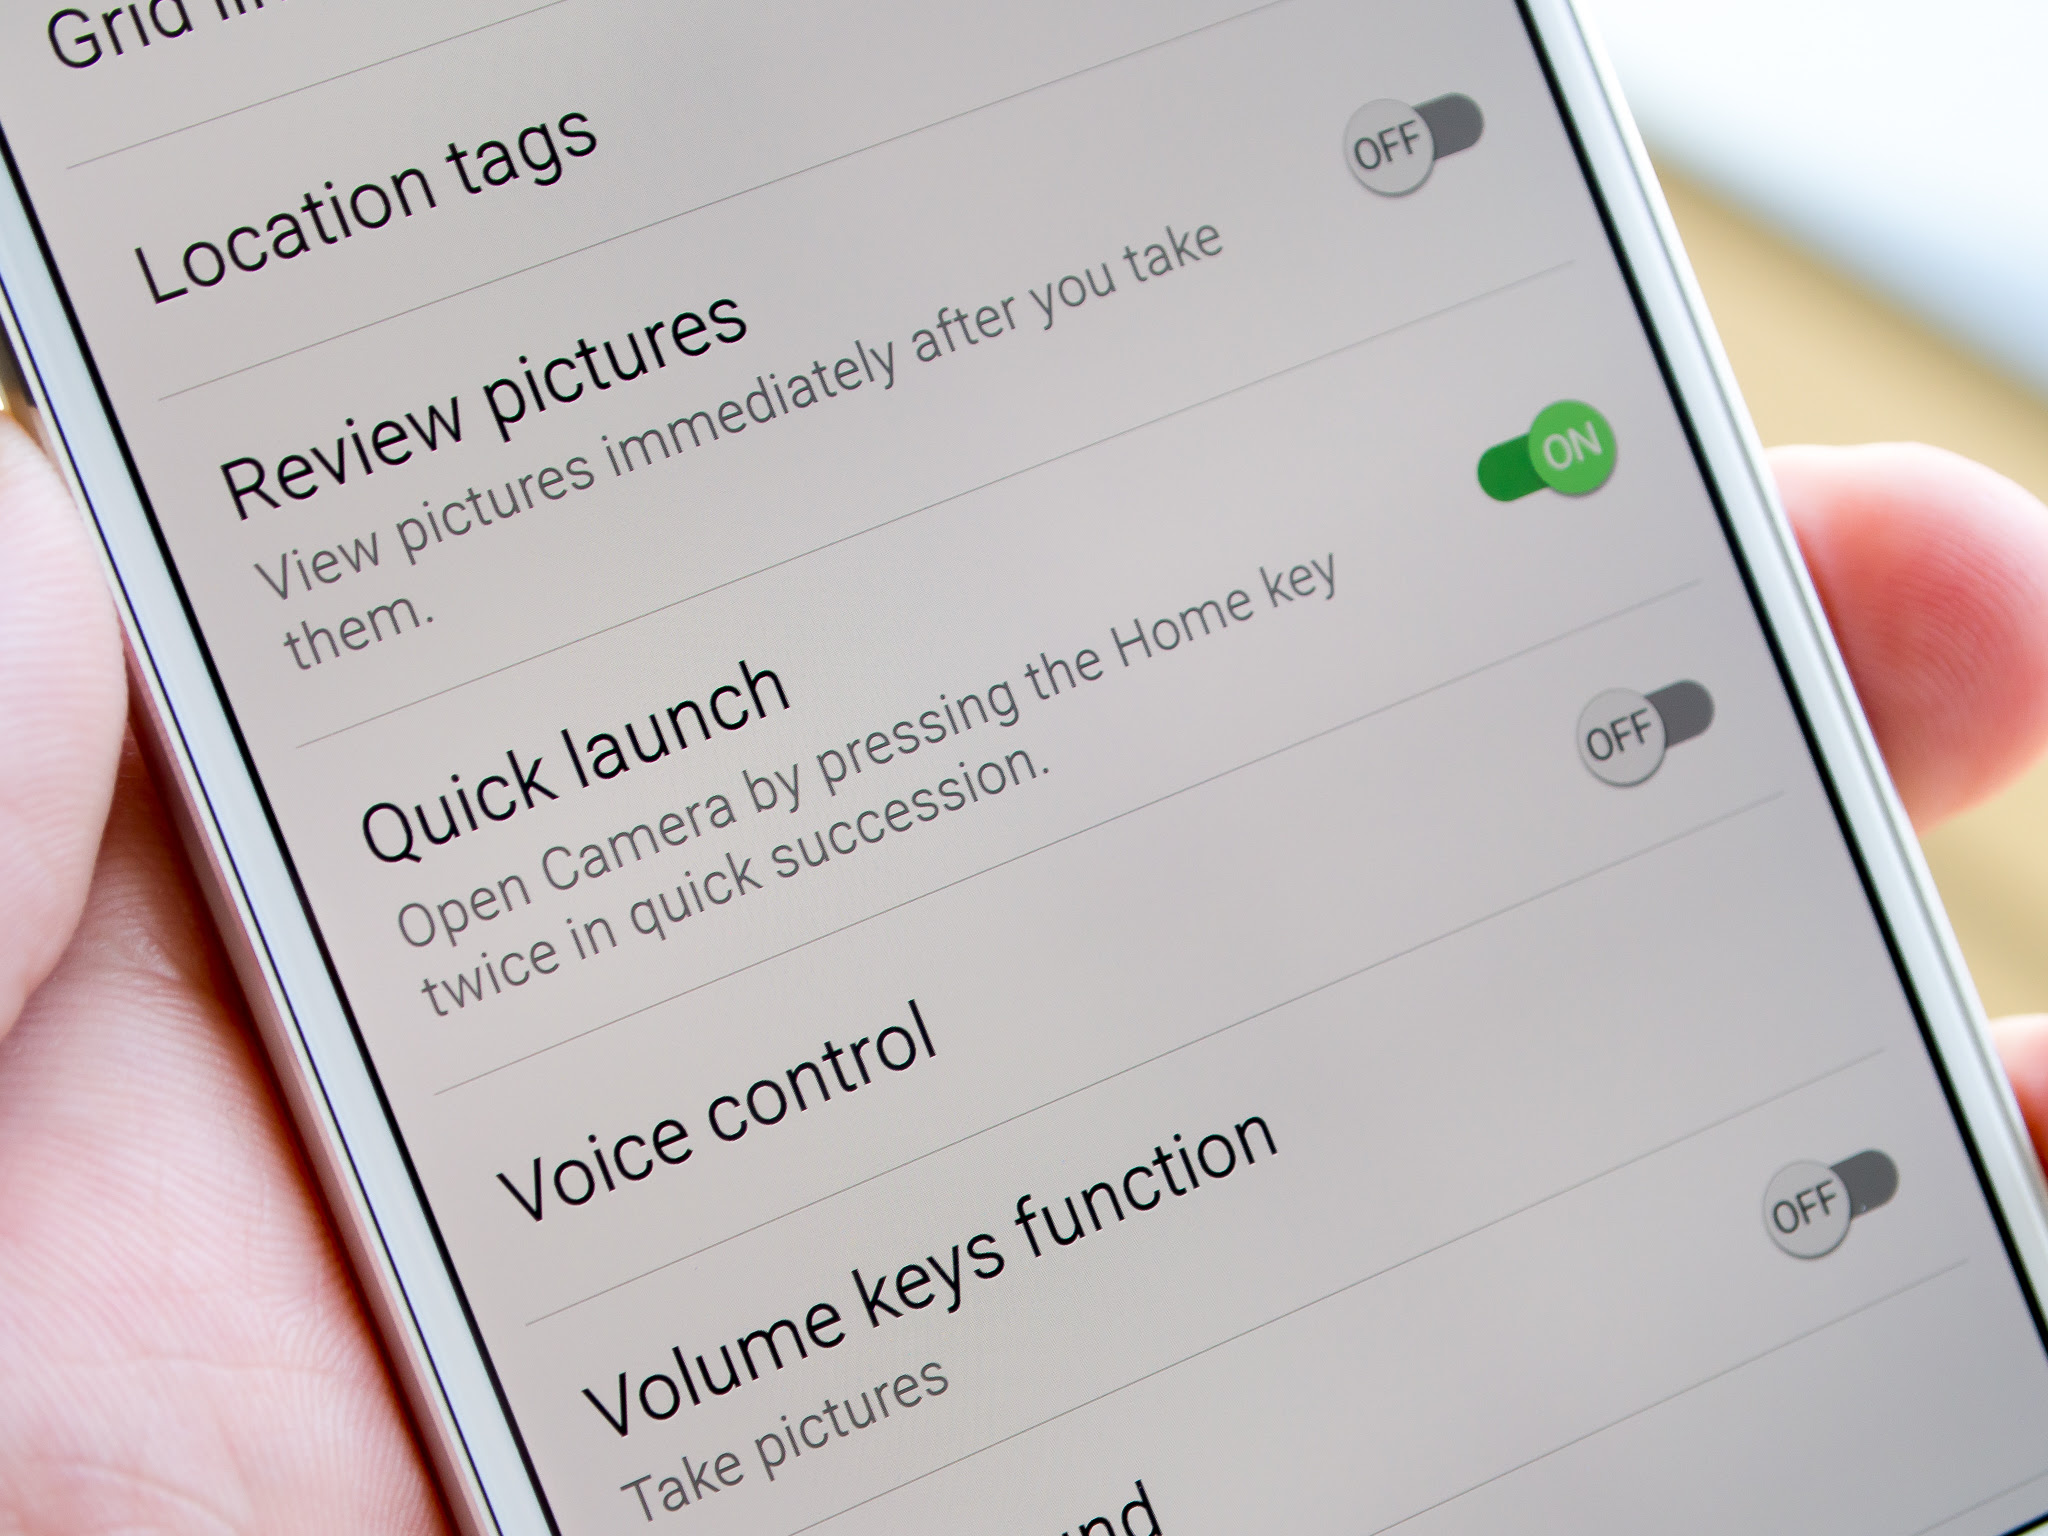 http://www.androidcentral.com/sites/androidcentral.com/files/styles/large_wm_brw/public/article_images/2015/04/galaxy-s6-quick-launch-setting.jpg?itok=nQPpgjeF